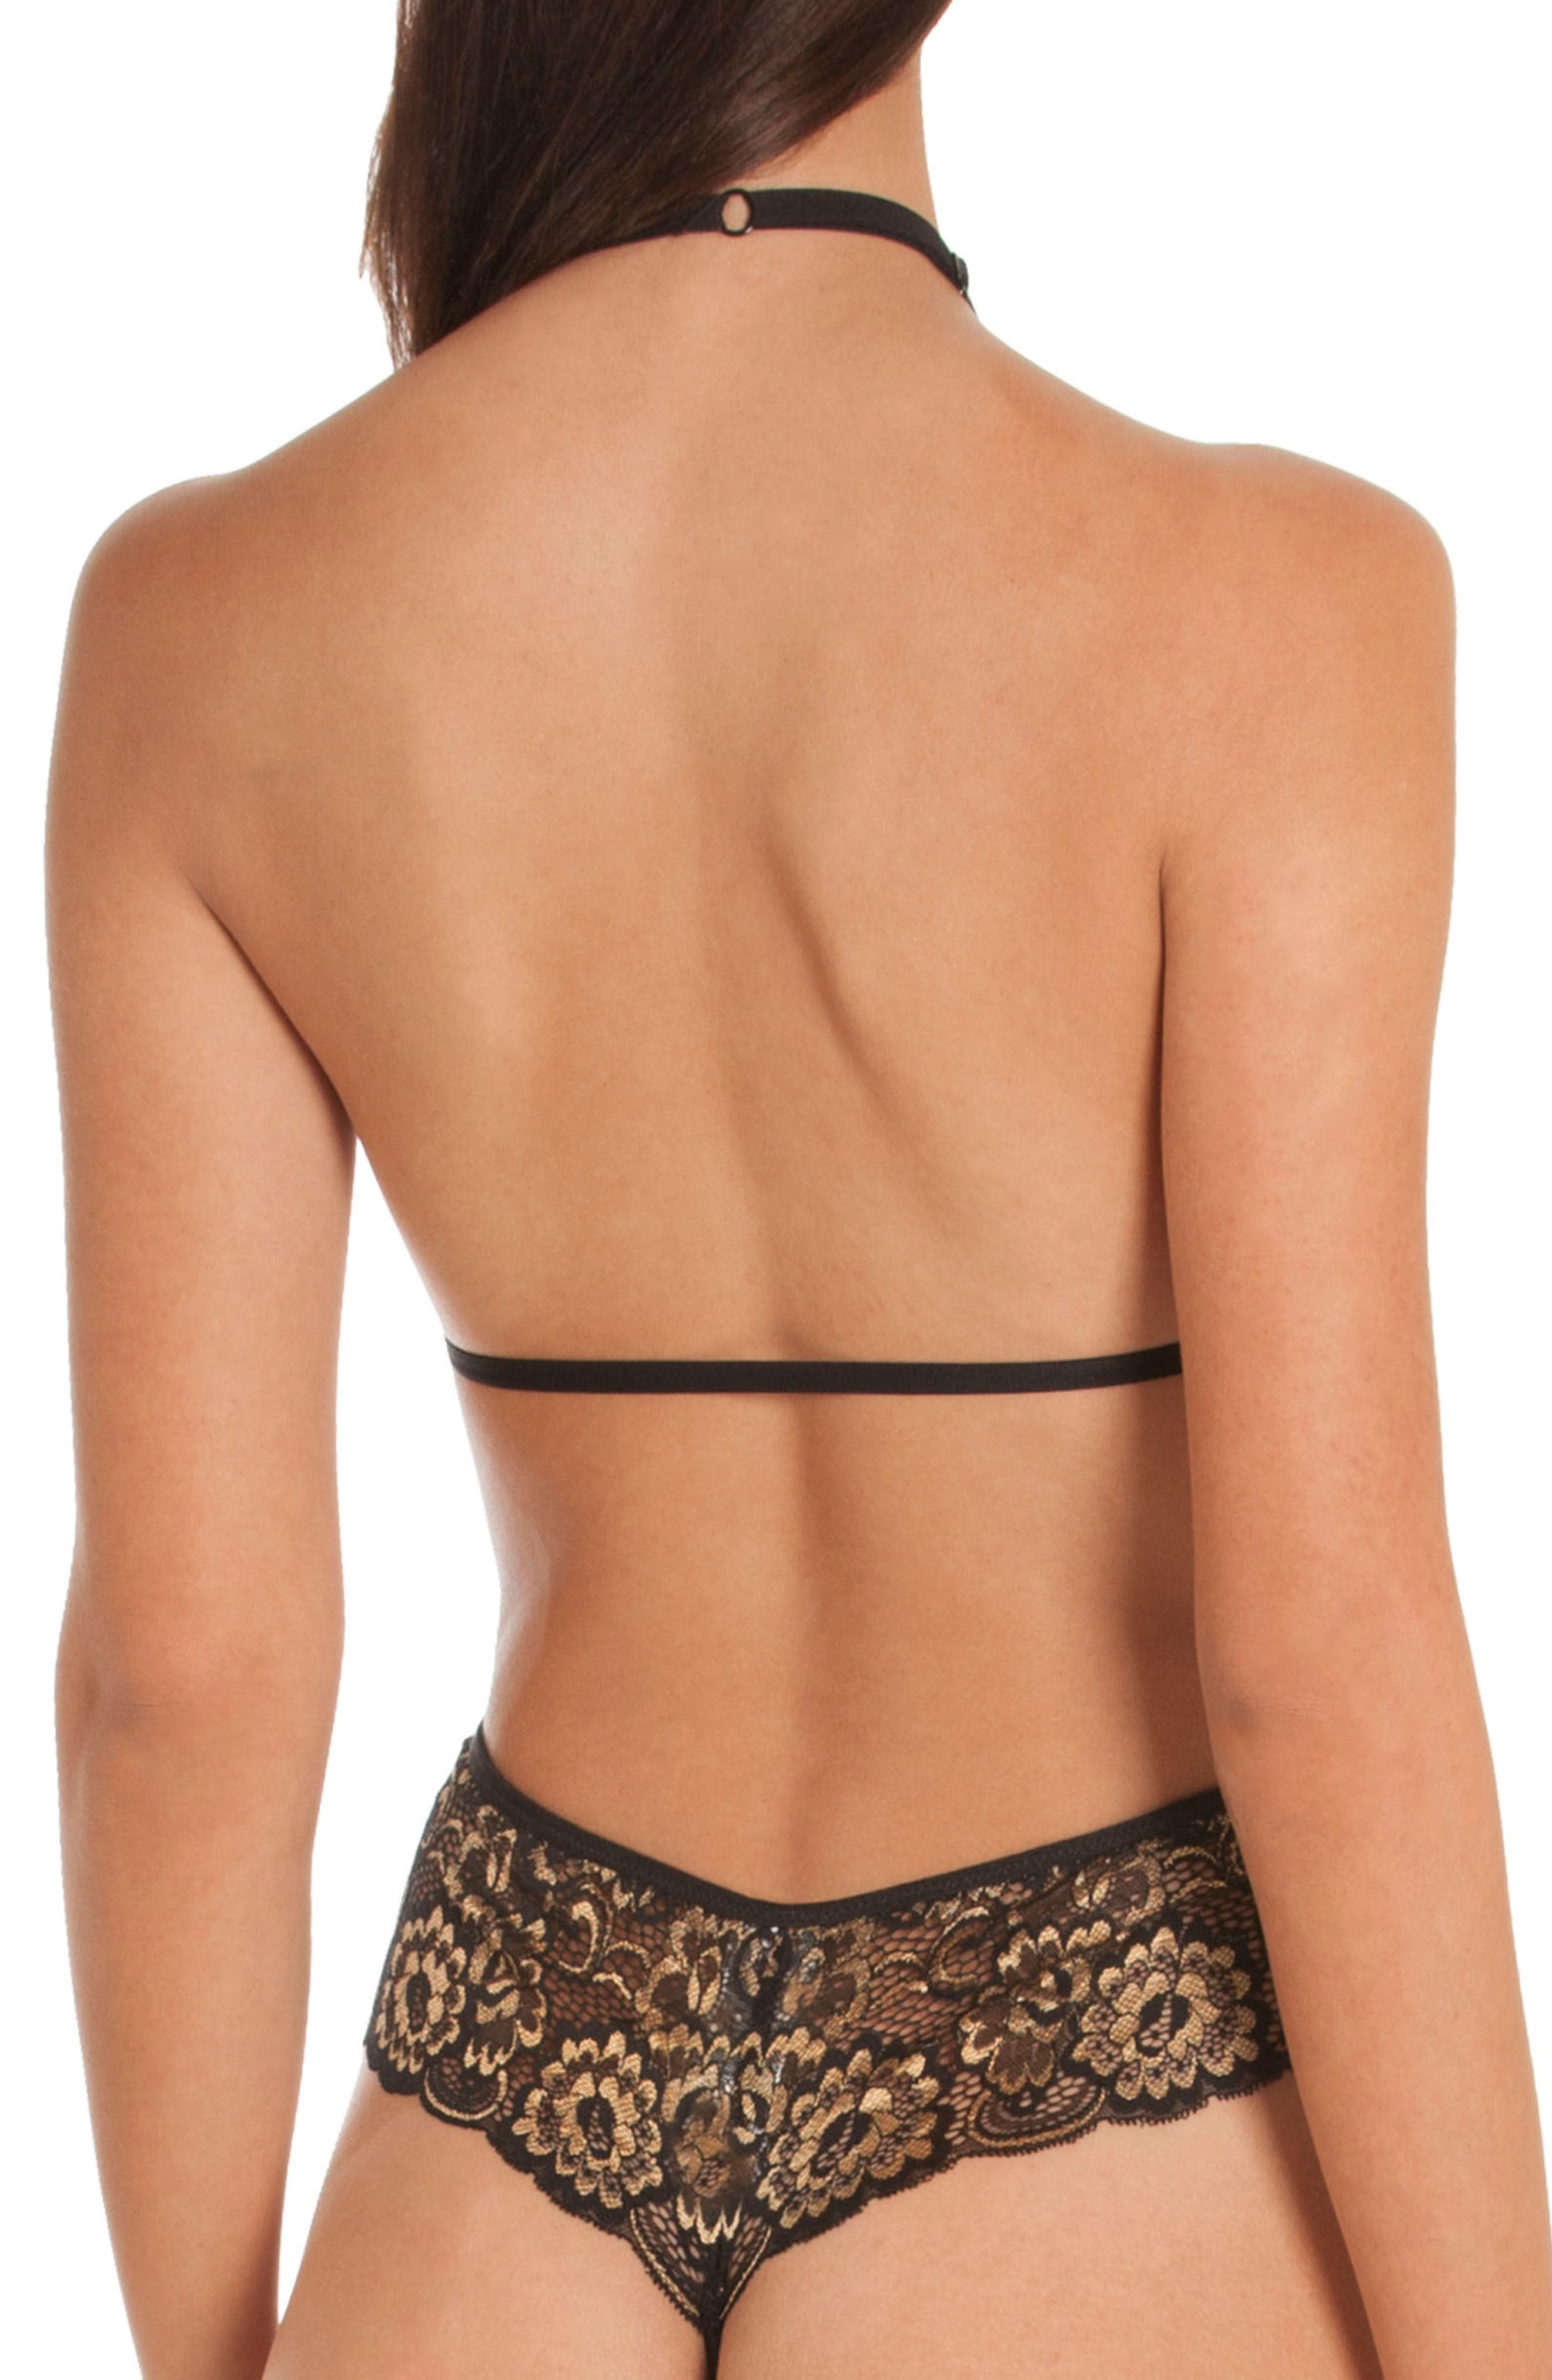 Laila Lace Thong Teddy,                             Alternate thumbnail 2, color,                             Black/ Gold